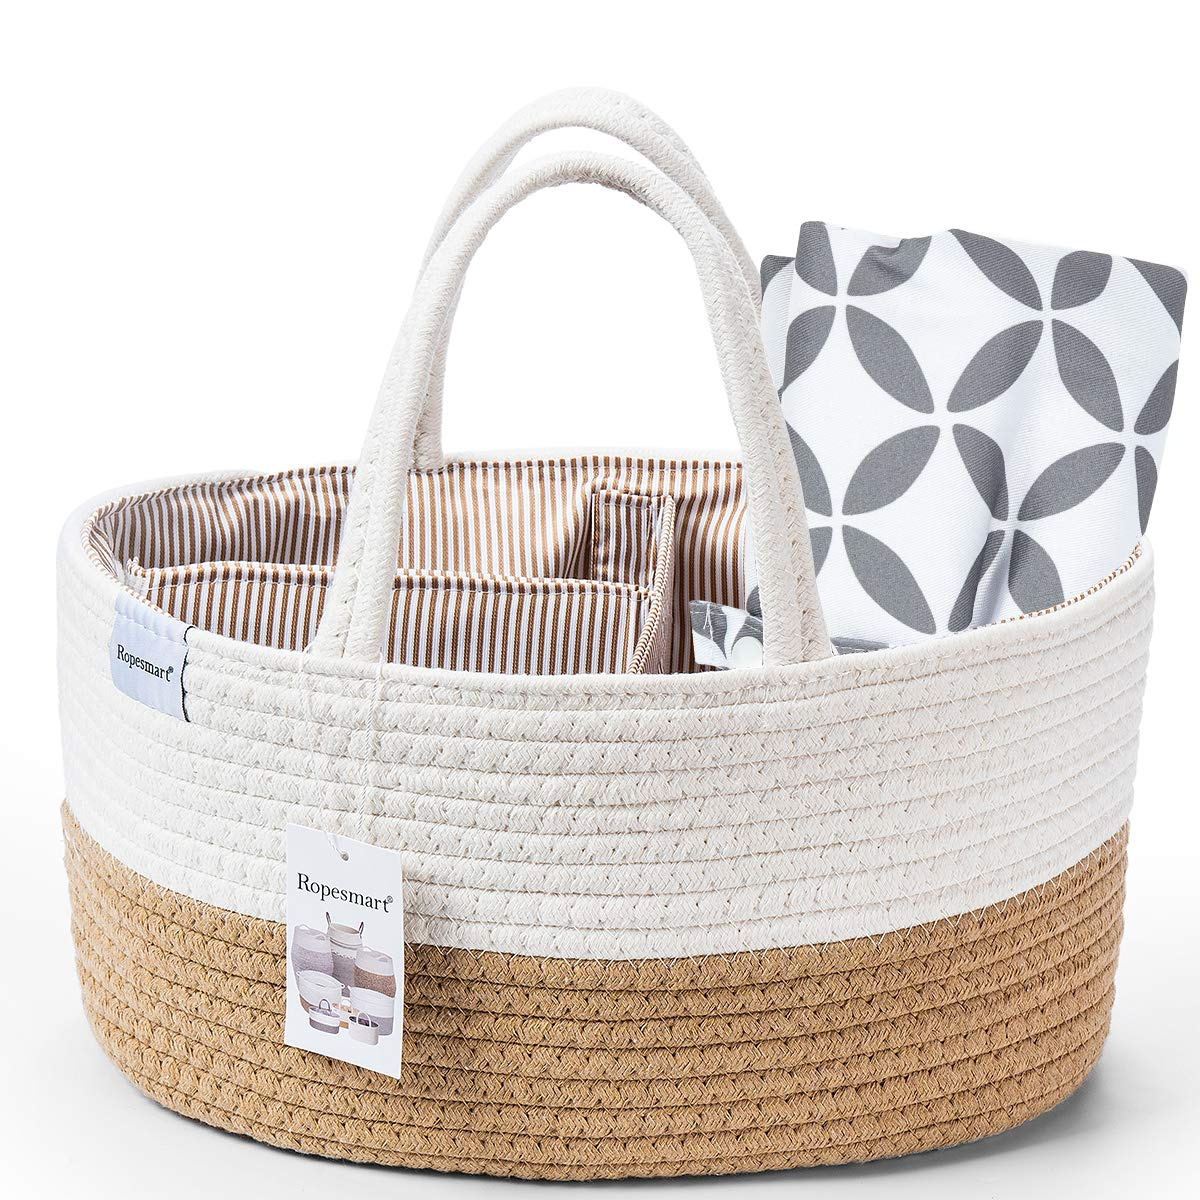 Ropesmart Baby Diaper Caddy Organizer,Cotton Rope Shower Gift Basket Storage Bin for Table /& Car Changing with Removable dividers,Portable Changing Pad Inc Gray